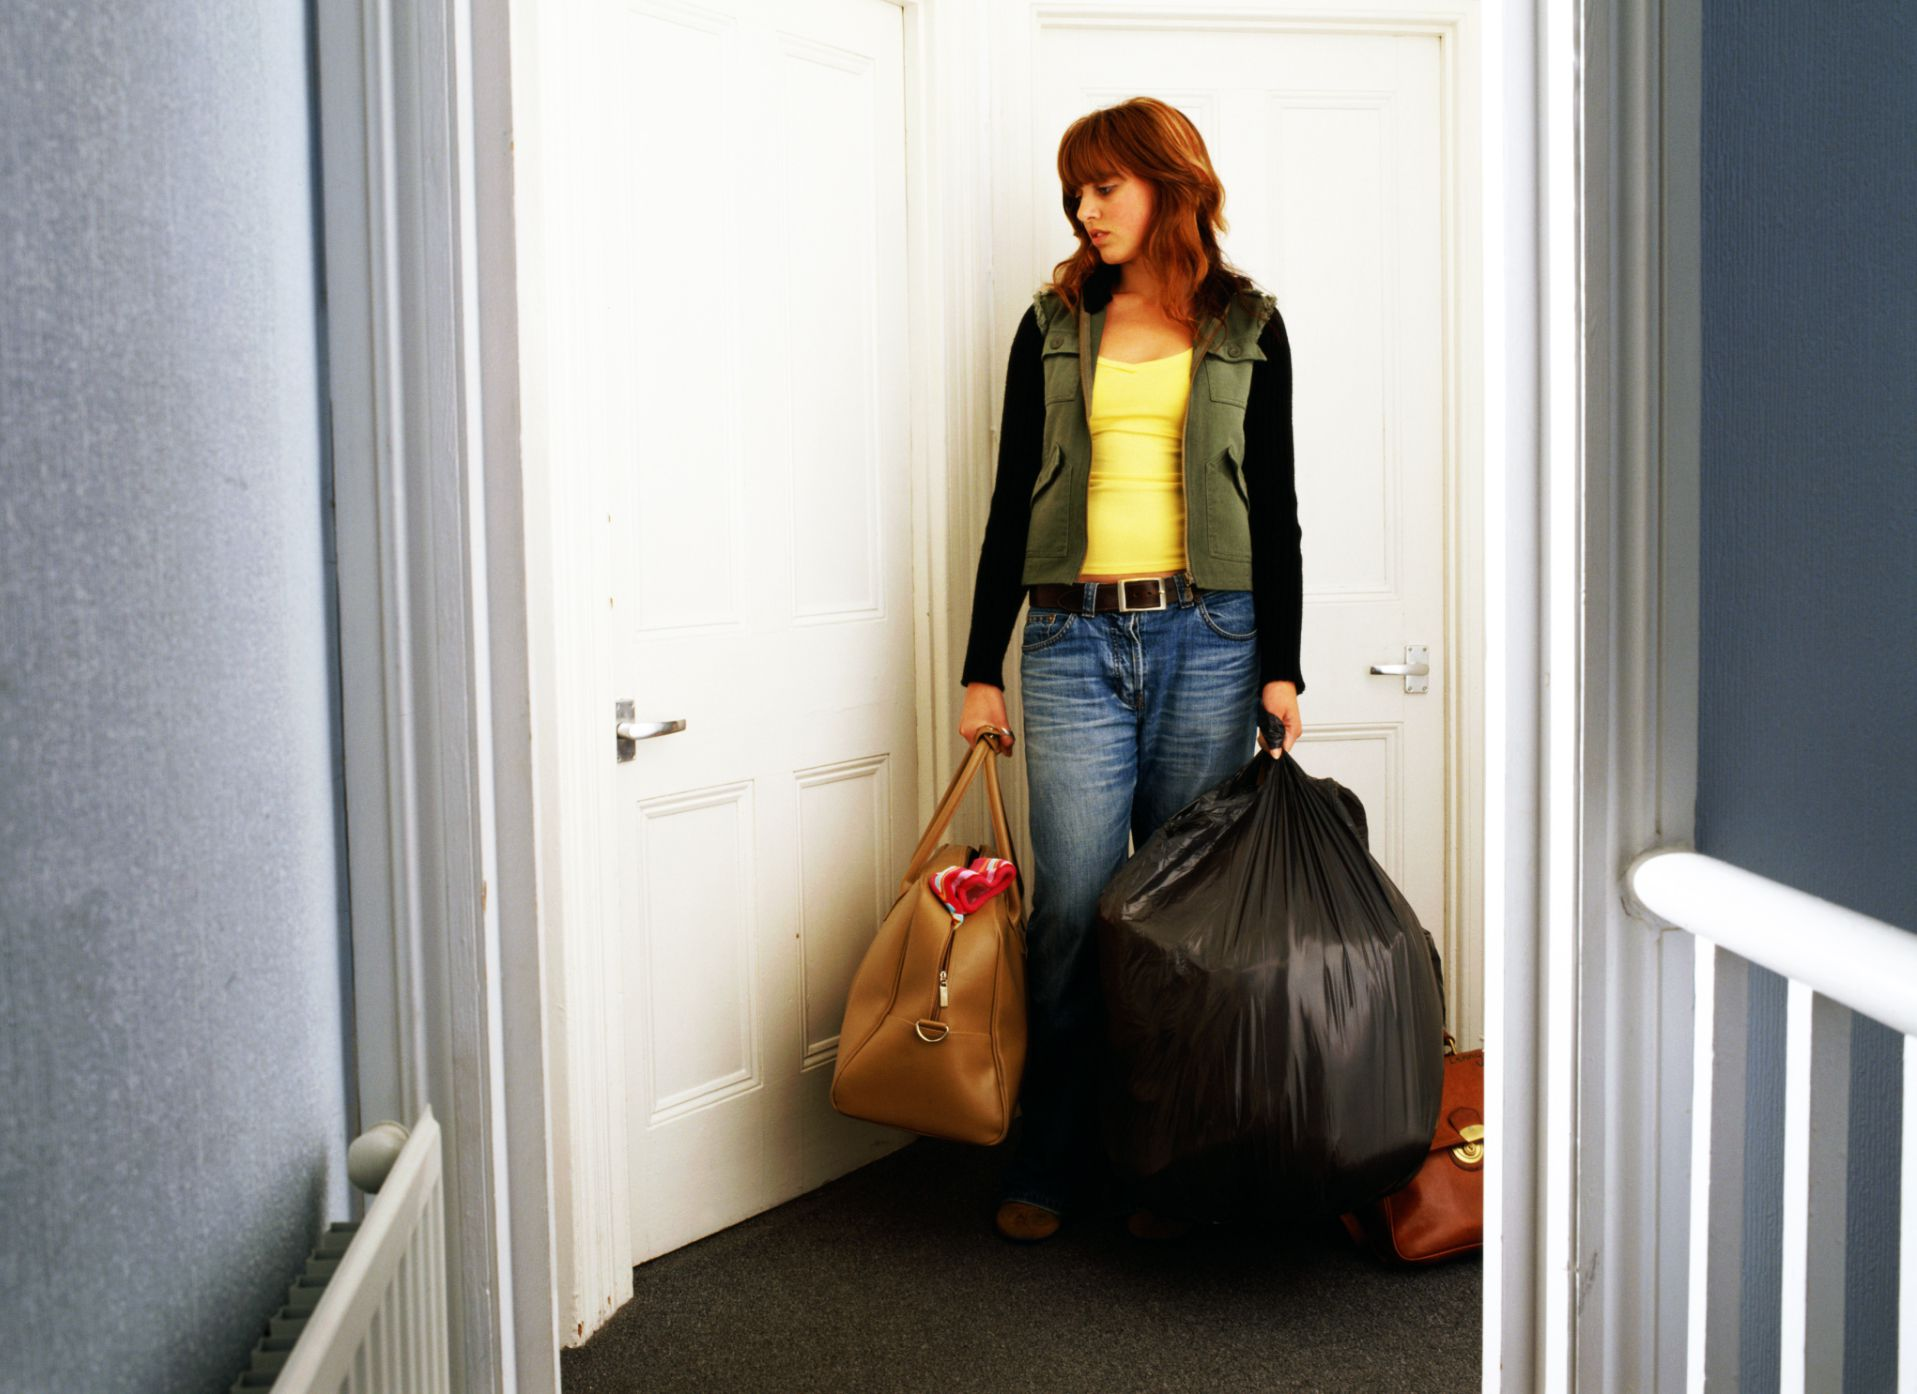 You Can Use Garbage Bags to Pack and Move